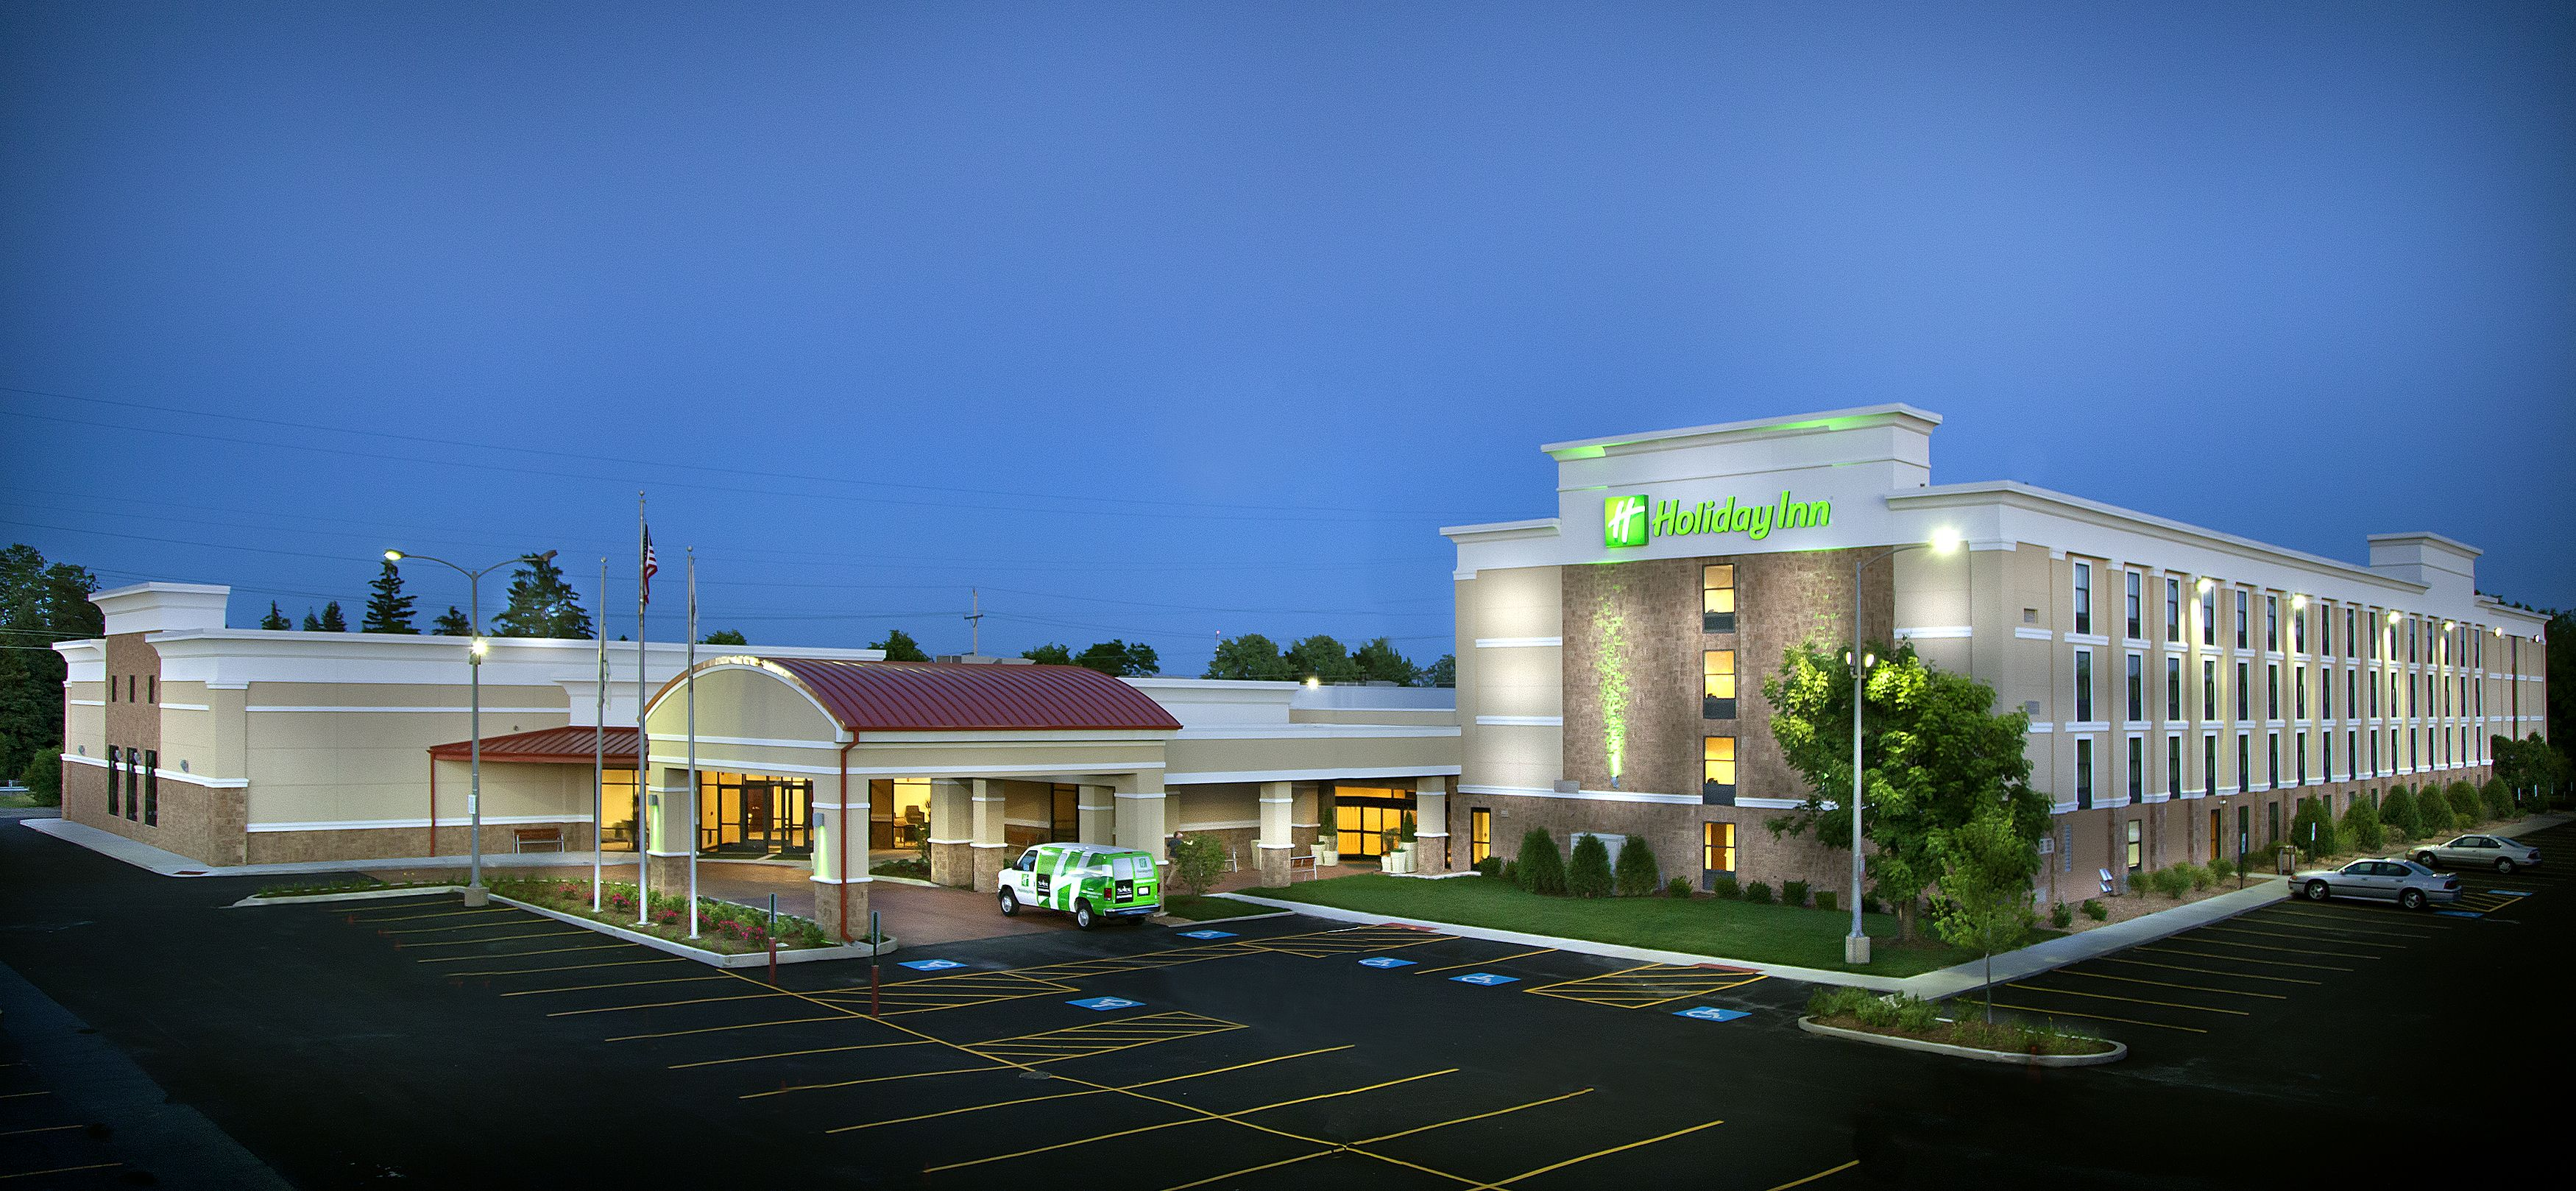 Our Beautiful Full Service Newly Renovated Hotel Has Been Open For A Short 4 Months Holiday Inn Hotel Great Hotel